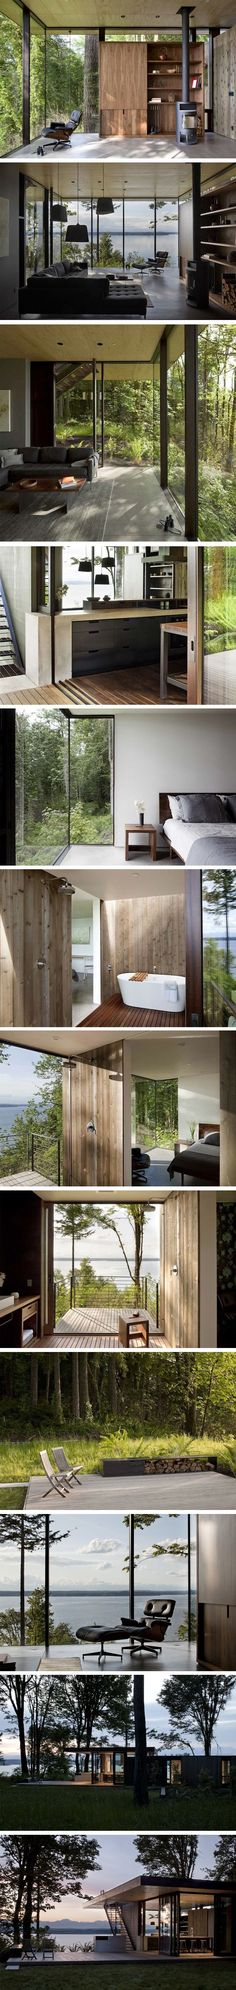 Case-Inlet-Retreat-MWWorks-Architecture+Design-2                                                                                                                                                                                 Plus